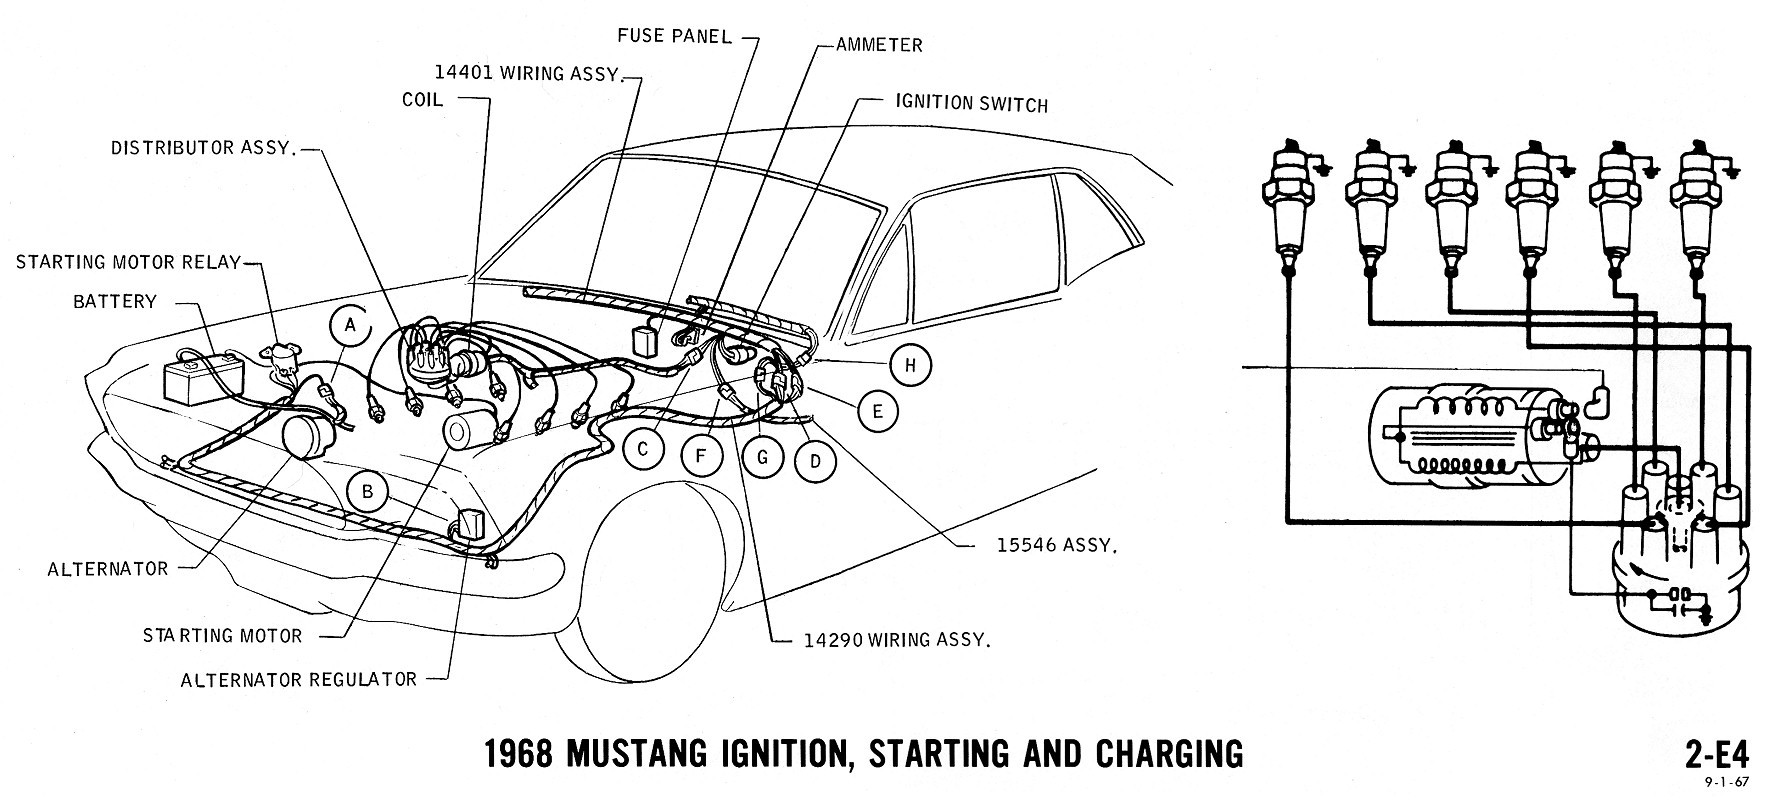 Mustang Ignition Starting And Charging Diagram